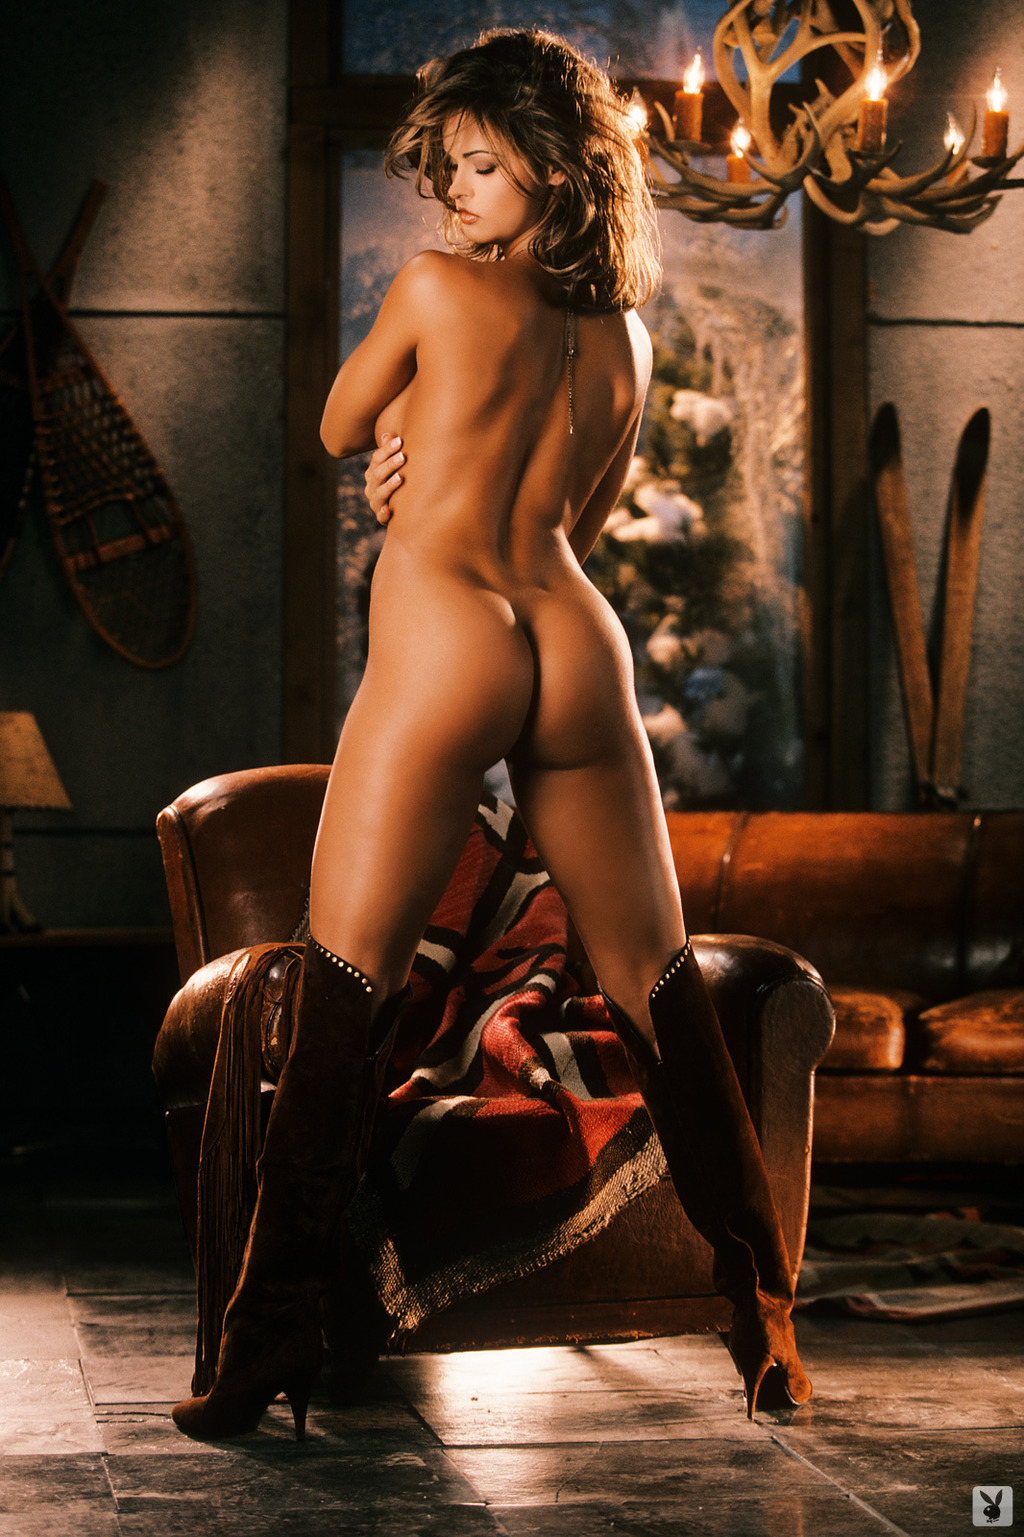 Karen mcdougal nude photos for playboy